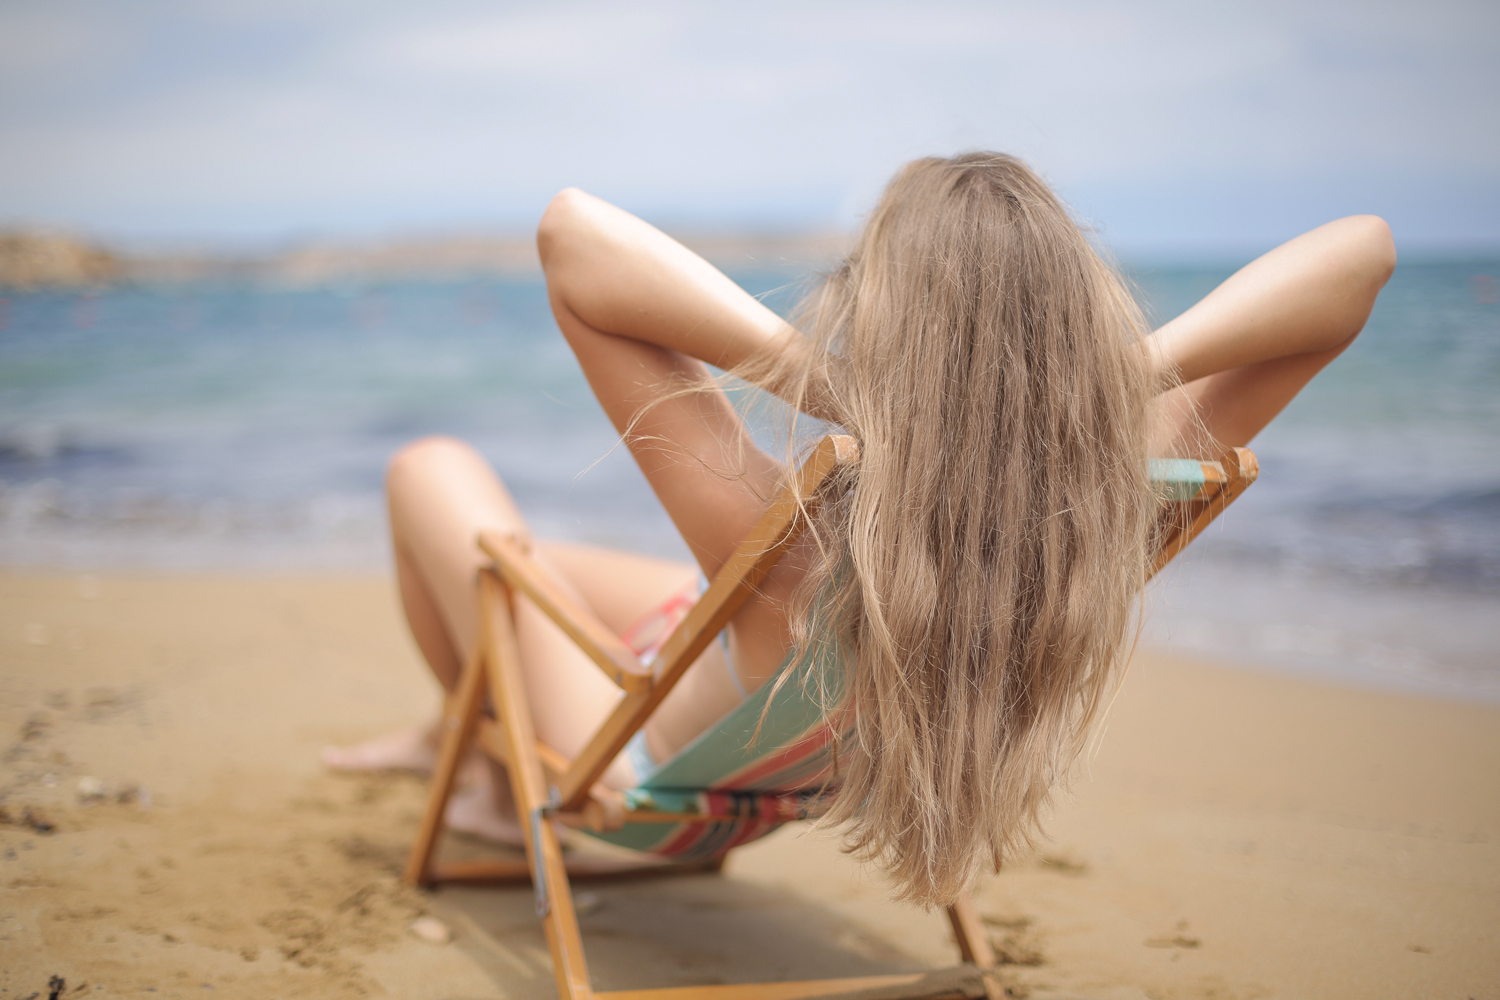 a picture of a woman at the beach touching her hair